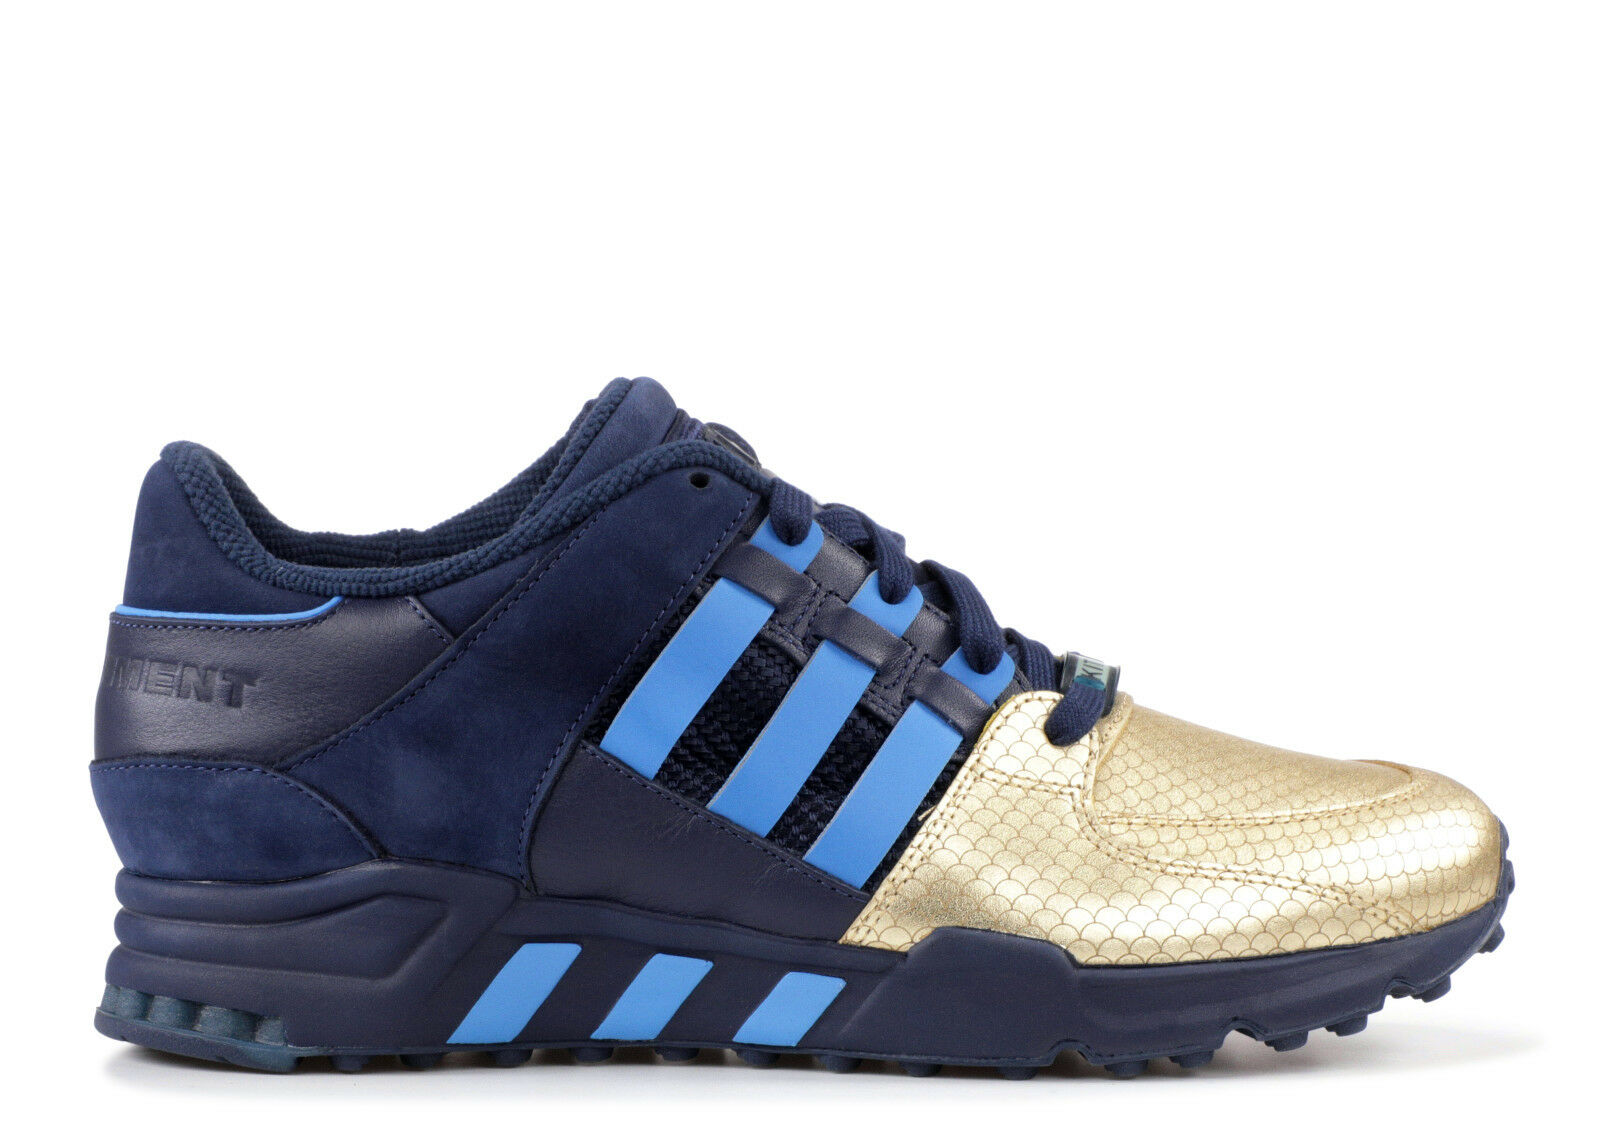 Adidas EQT RNG Support 93 Kith Ronnie Fieg Gold Toe Size 12.5. B26274 nmd yeezy